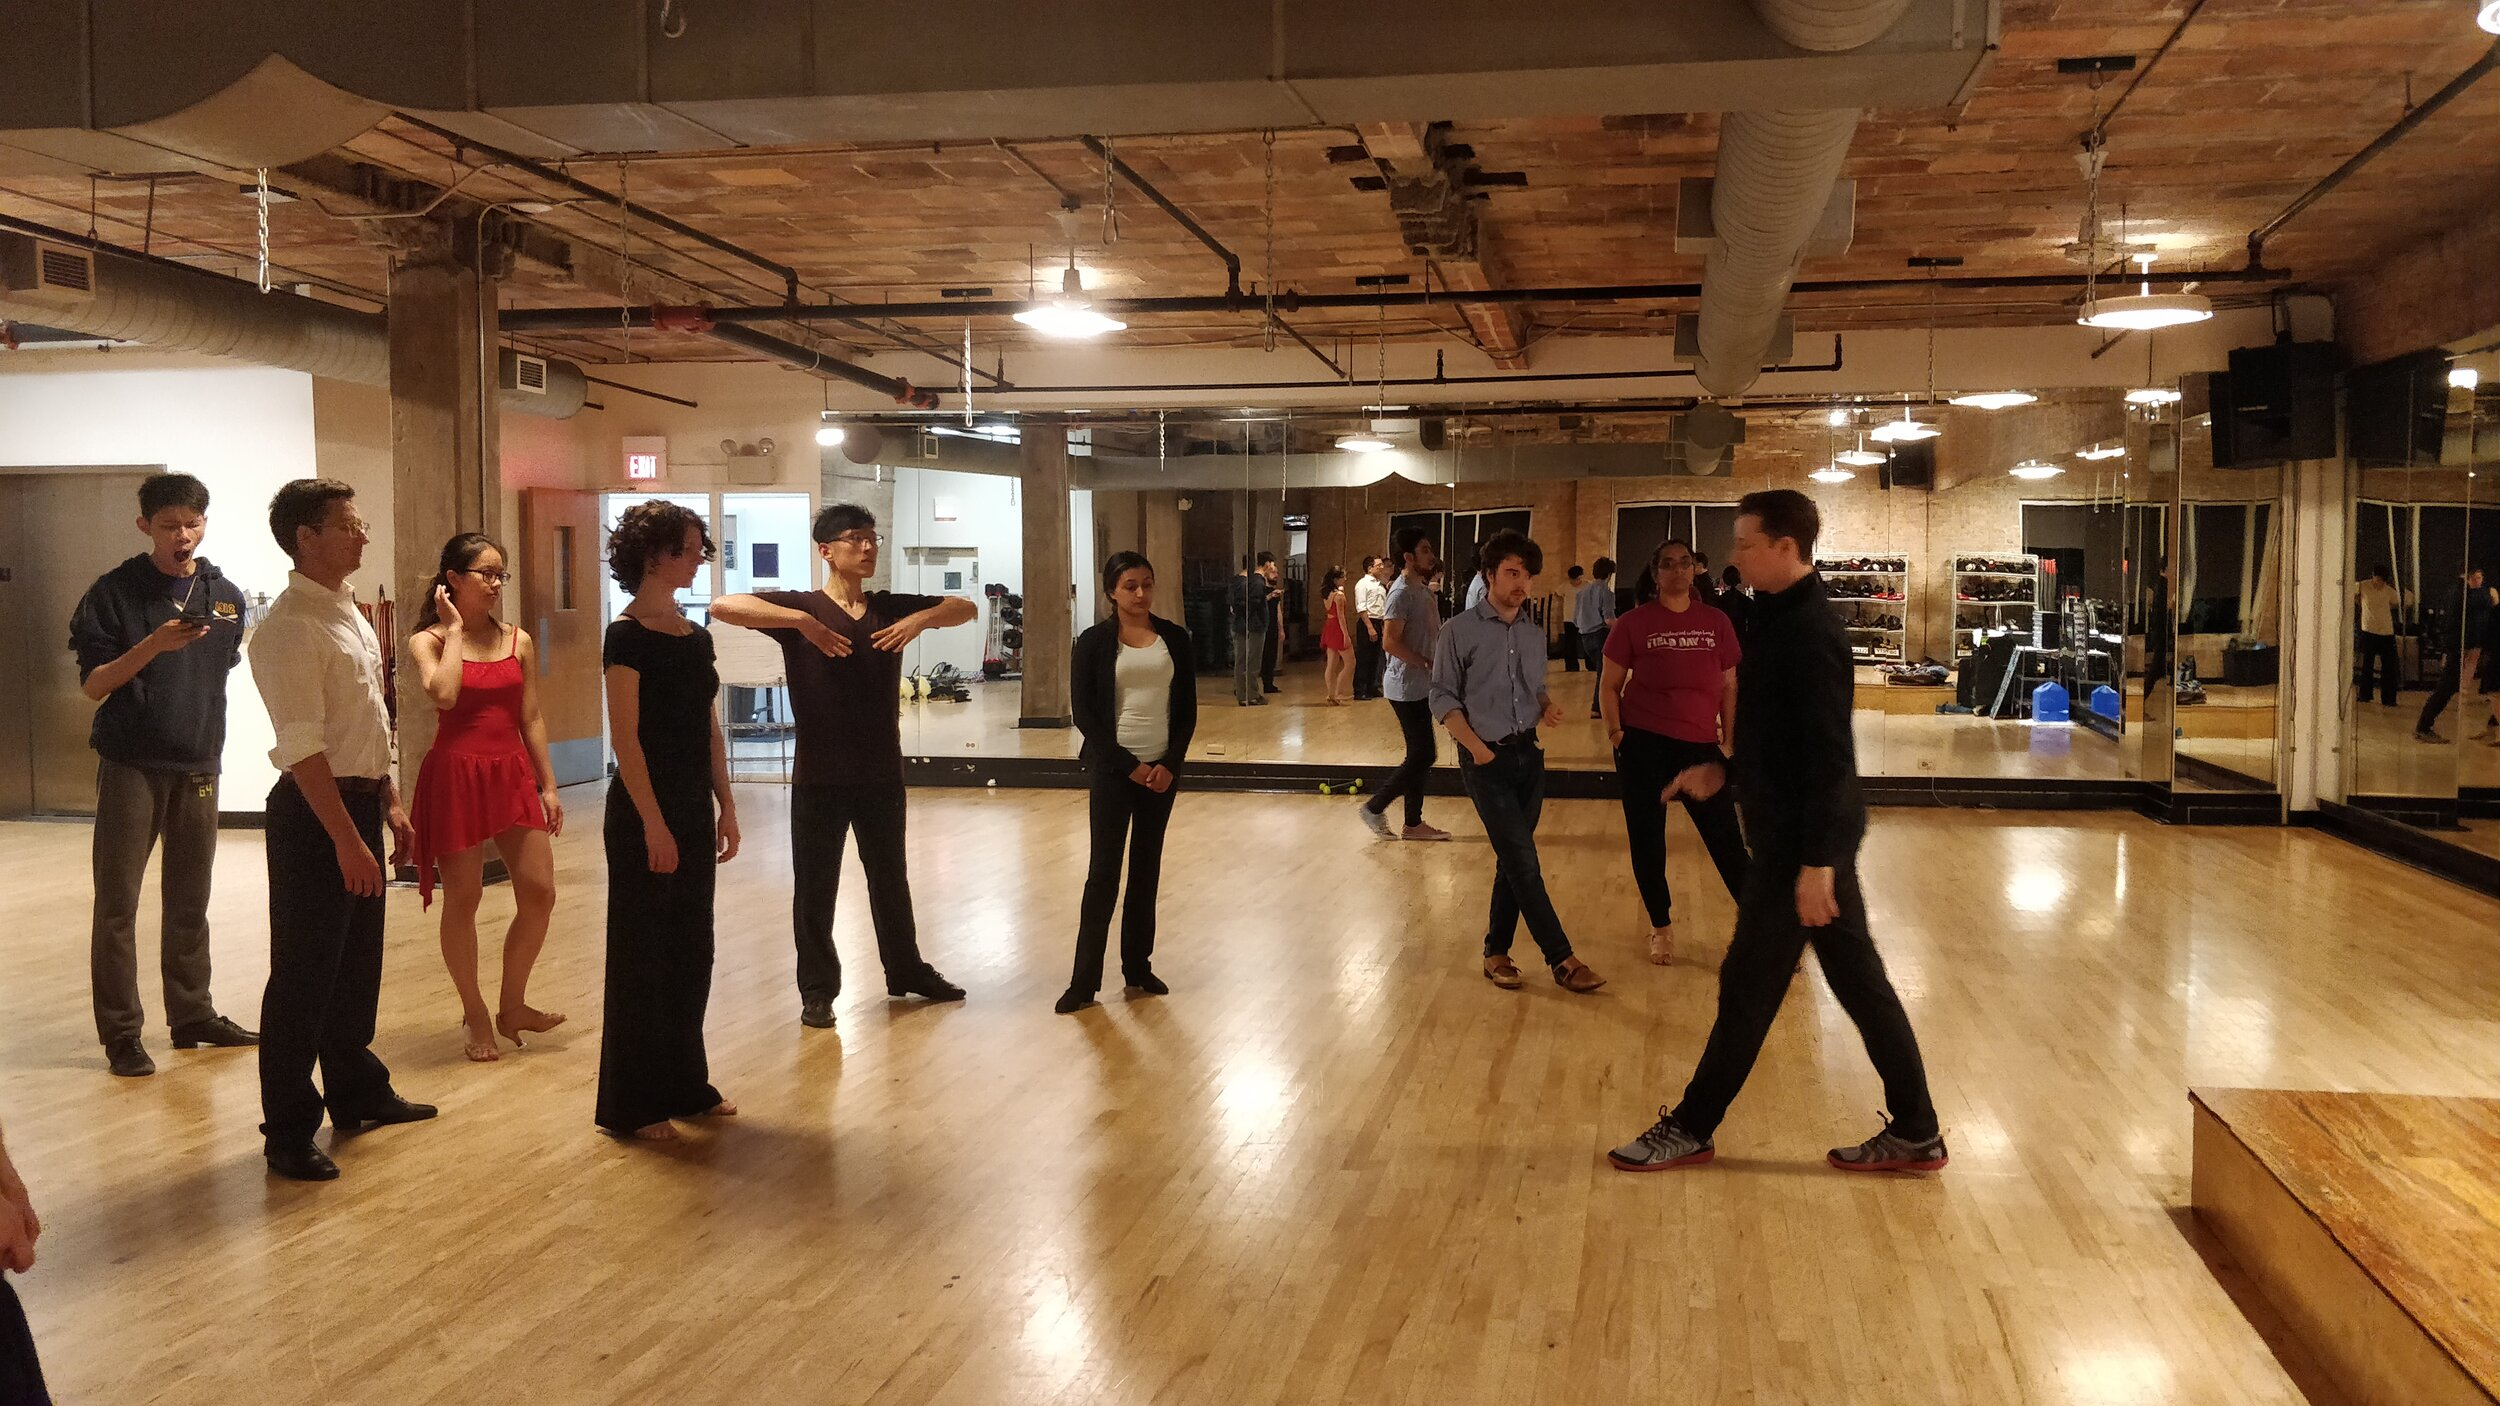 Intermediate International Lessons - Evanston Athletic Club1723 Benson Ave, Evanston, IL 60201Tuesdays, 8-10 pm